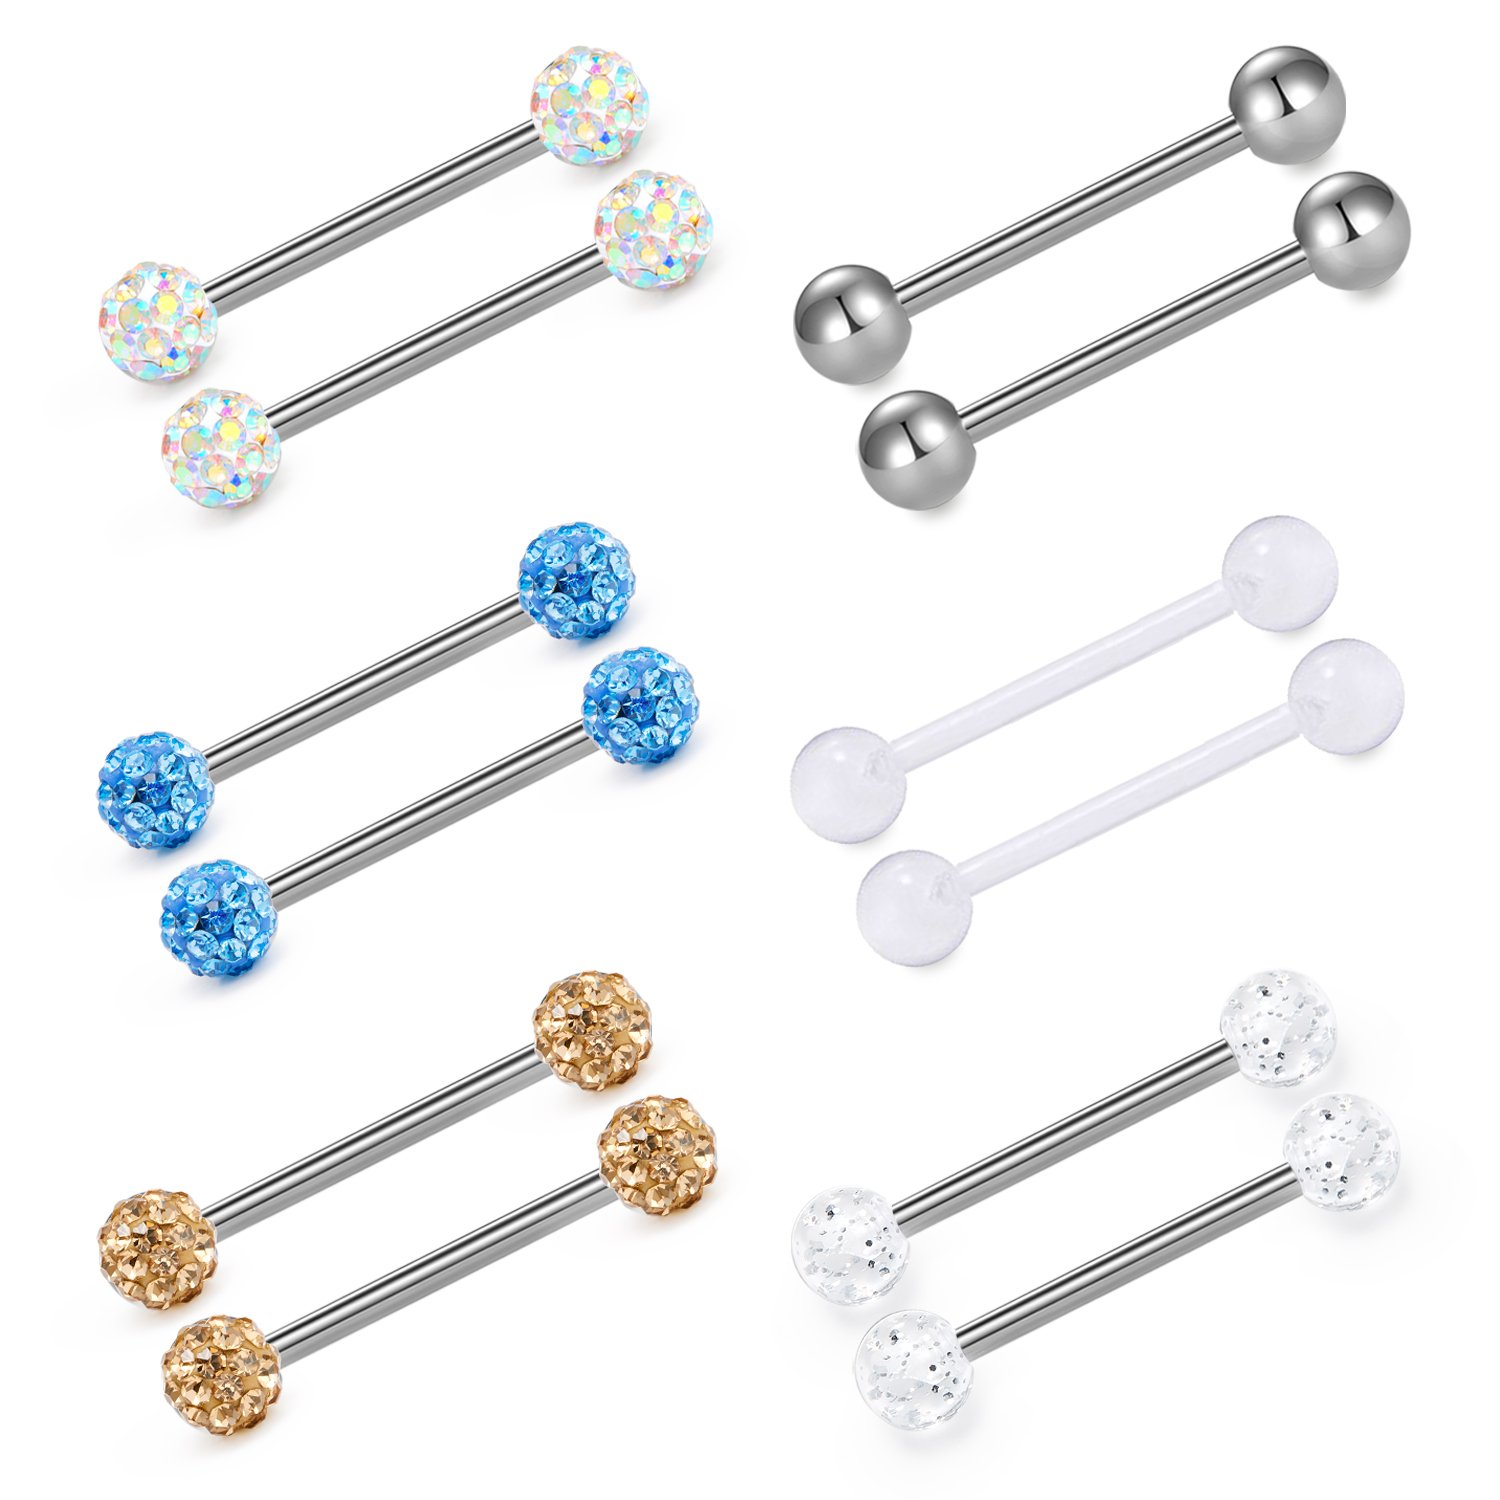 vcmart Tongue Rings Silver Surgical Steel Nipple Straight Barbells Piercing Jewelry 5/8in 14G